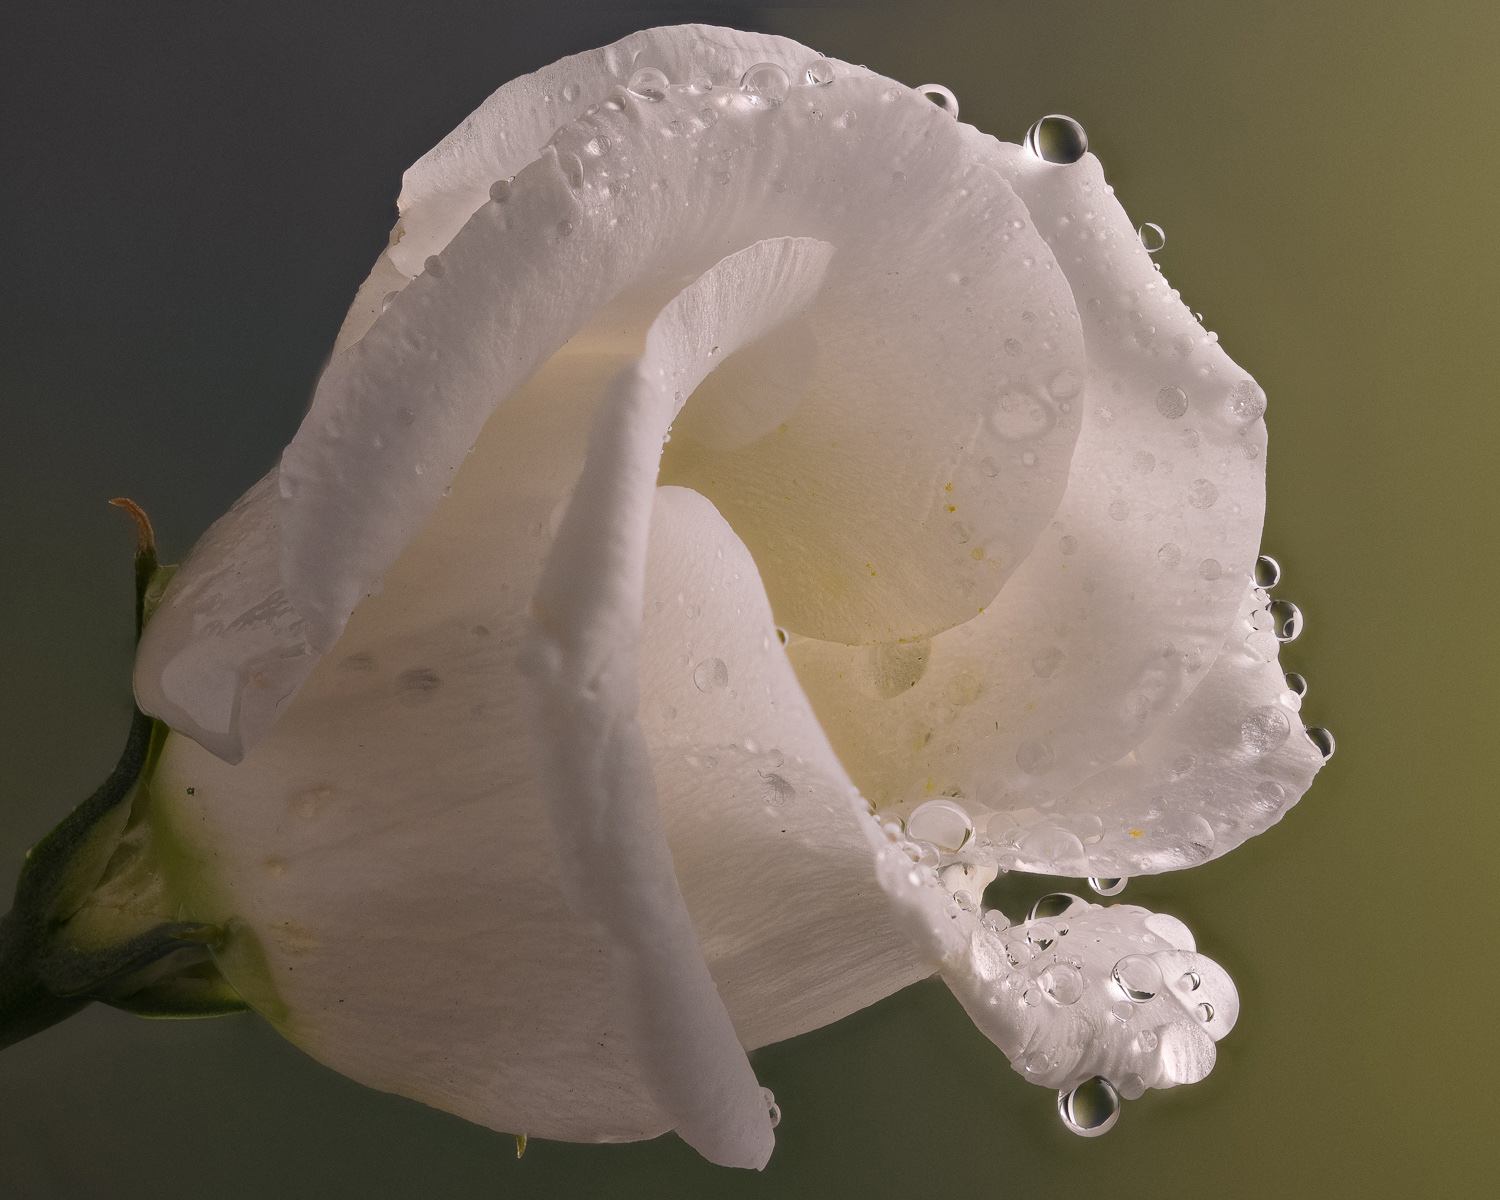 You can see the image here is pretty sharp with minimal artefacts. There is some blurring around the outside of the flower but this would be easily fixed in Photoshop. The petals nearest the stem still hold details.